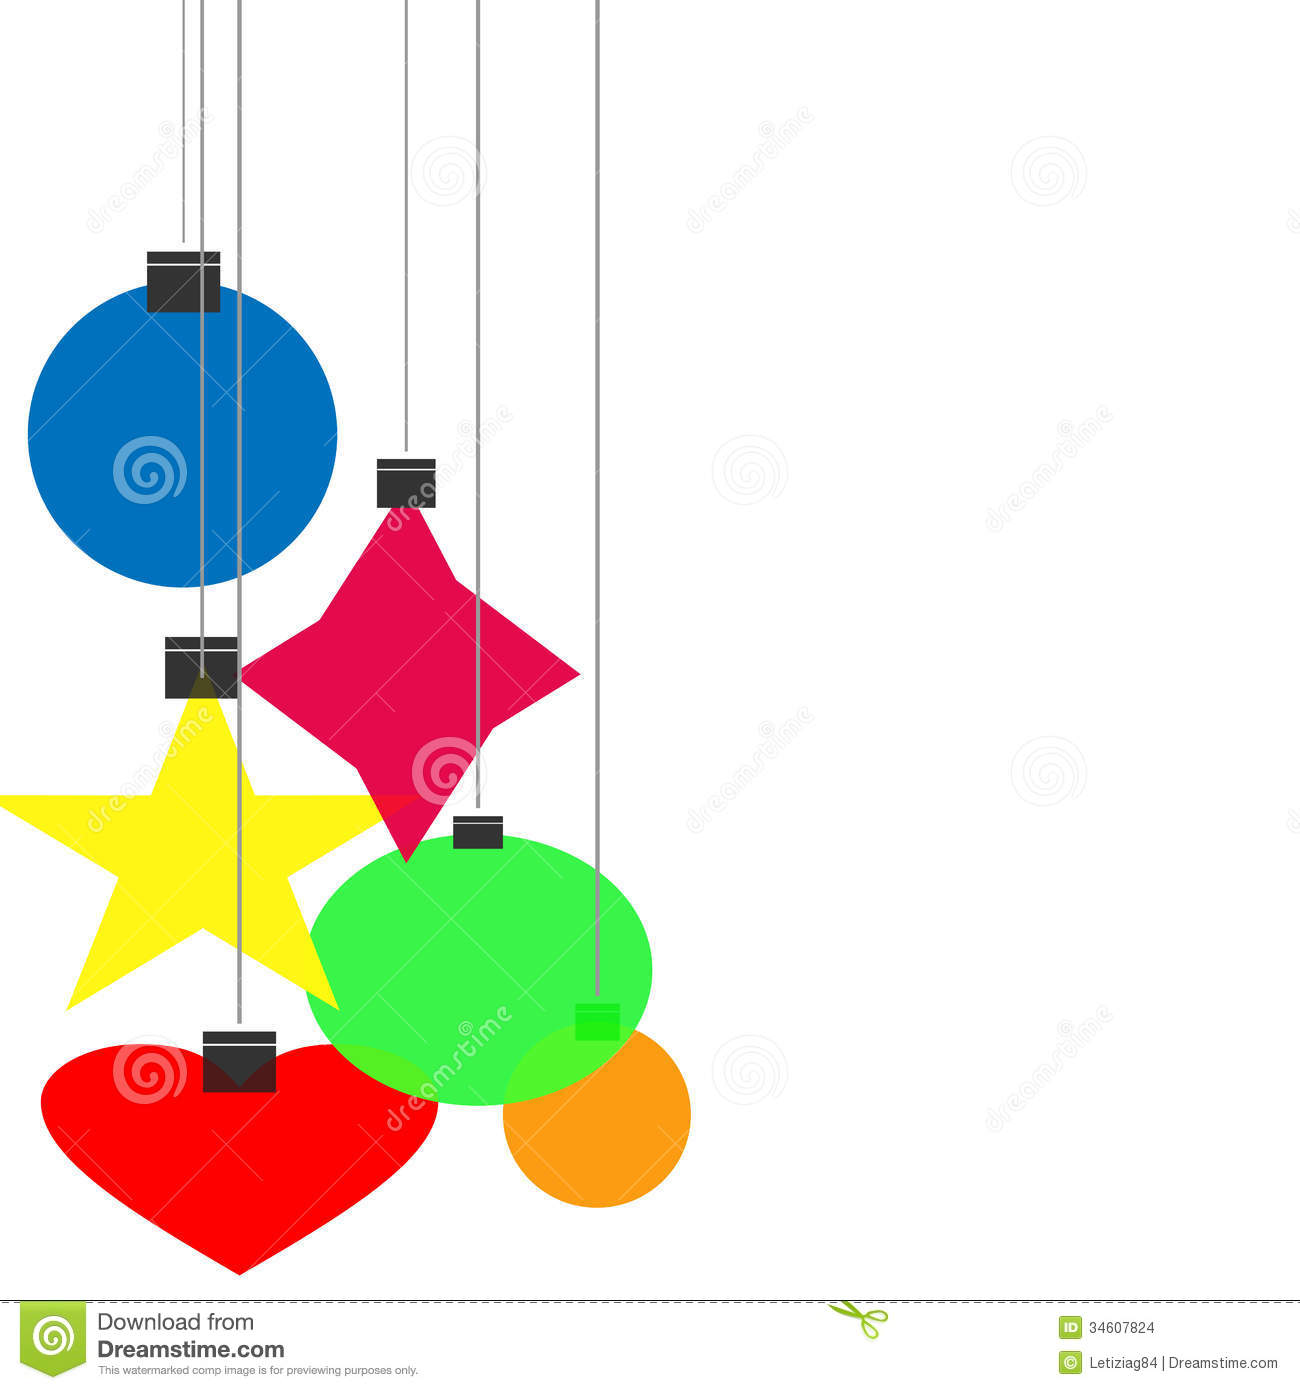 Graphic design - Christmas balls of different shapes.